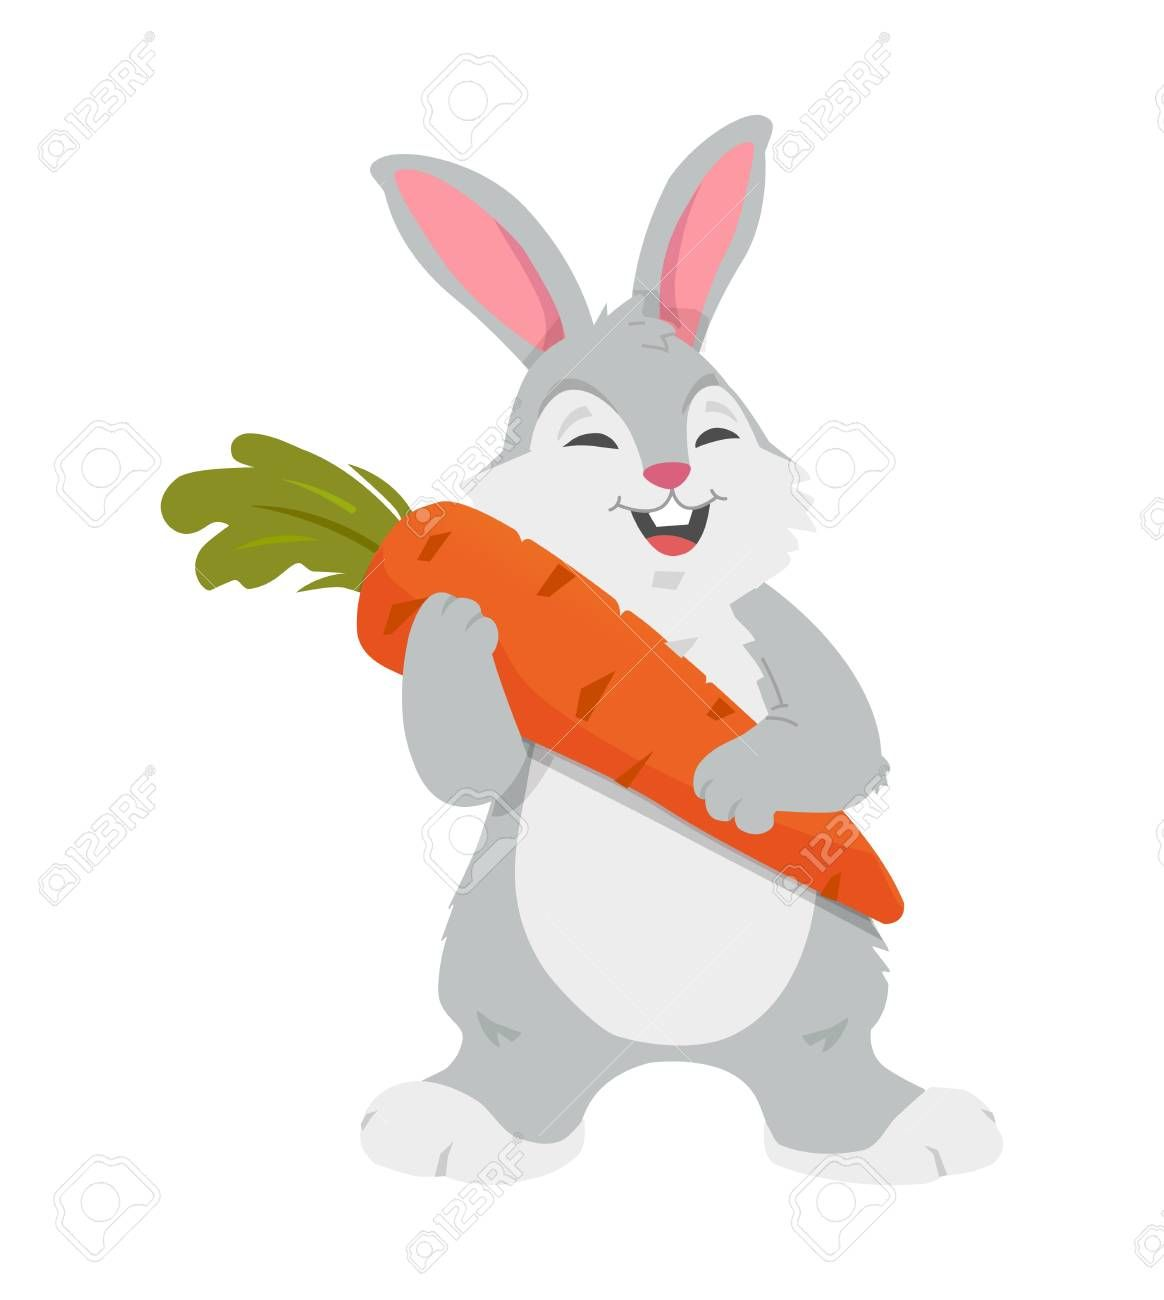 Cheerful Rabbit With Carrot Colorful Cartoon Character Vector